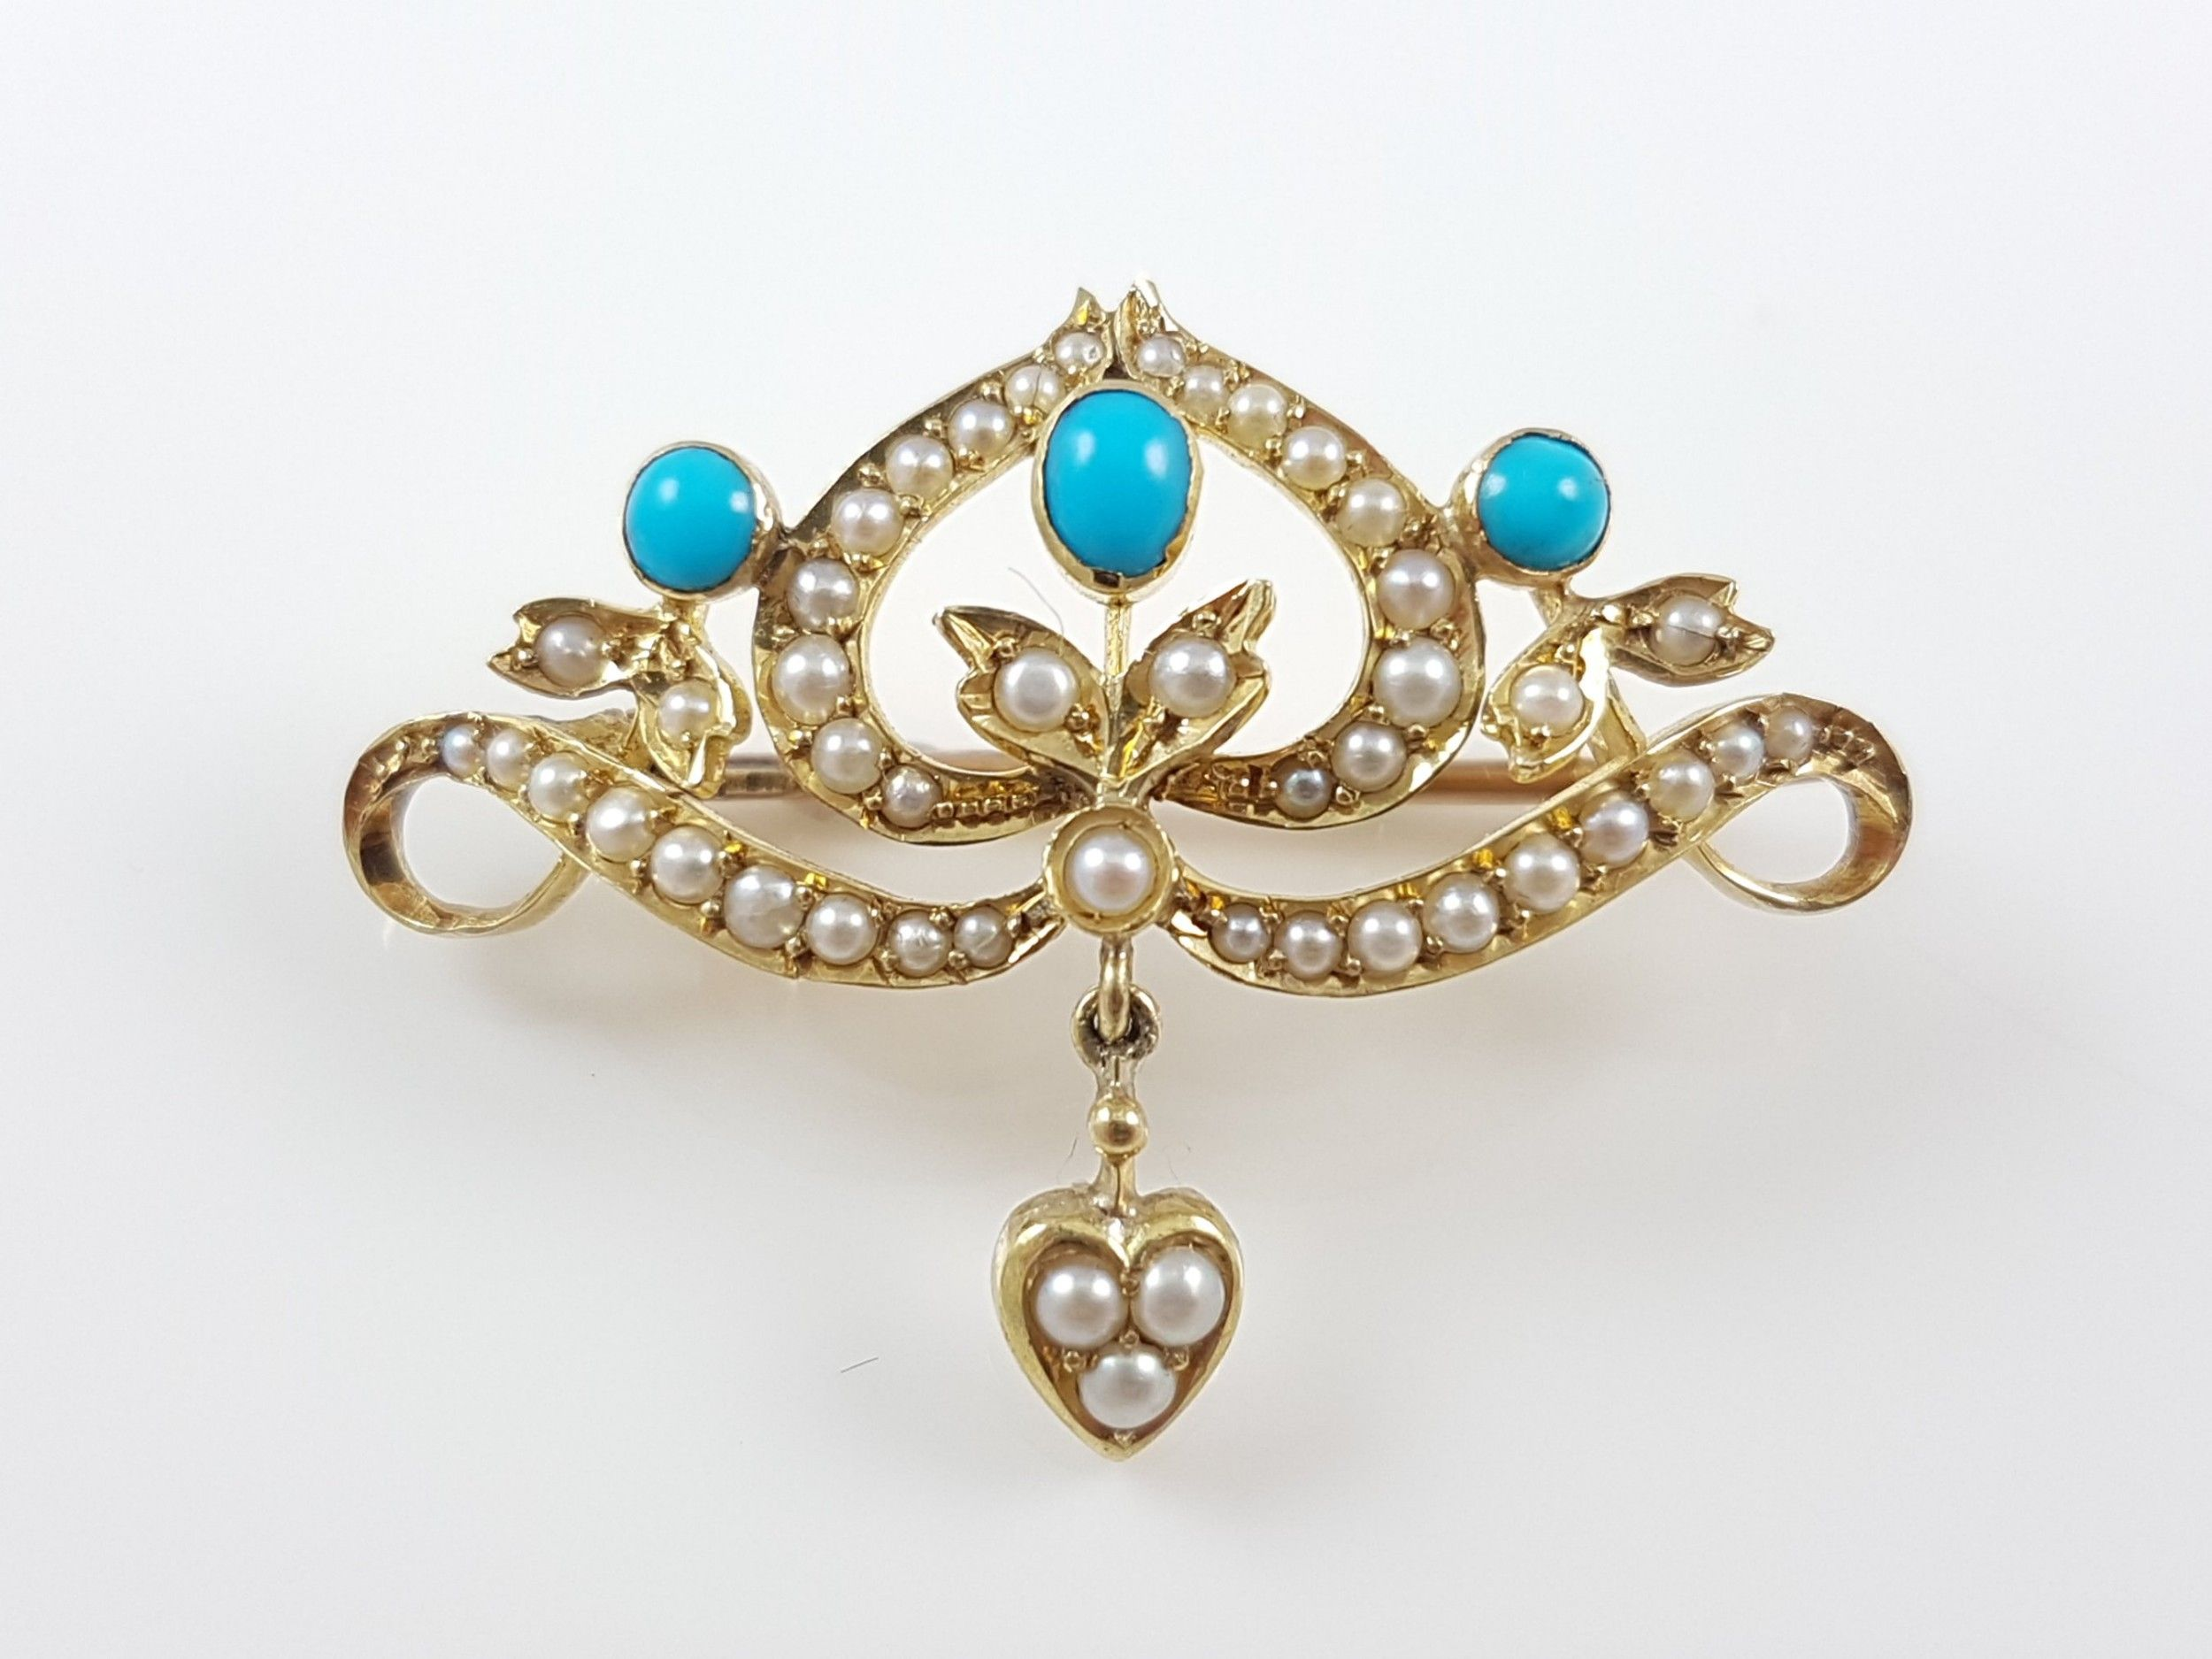 turquoise and seed pearl brooch and earrings 1950s gold